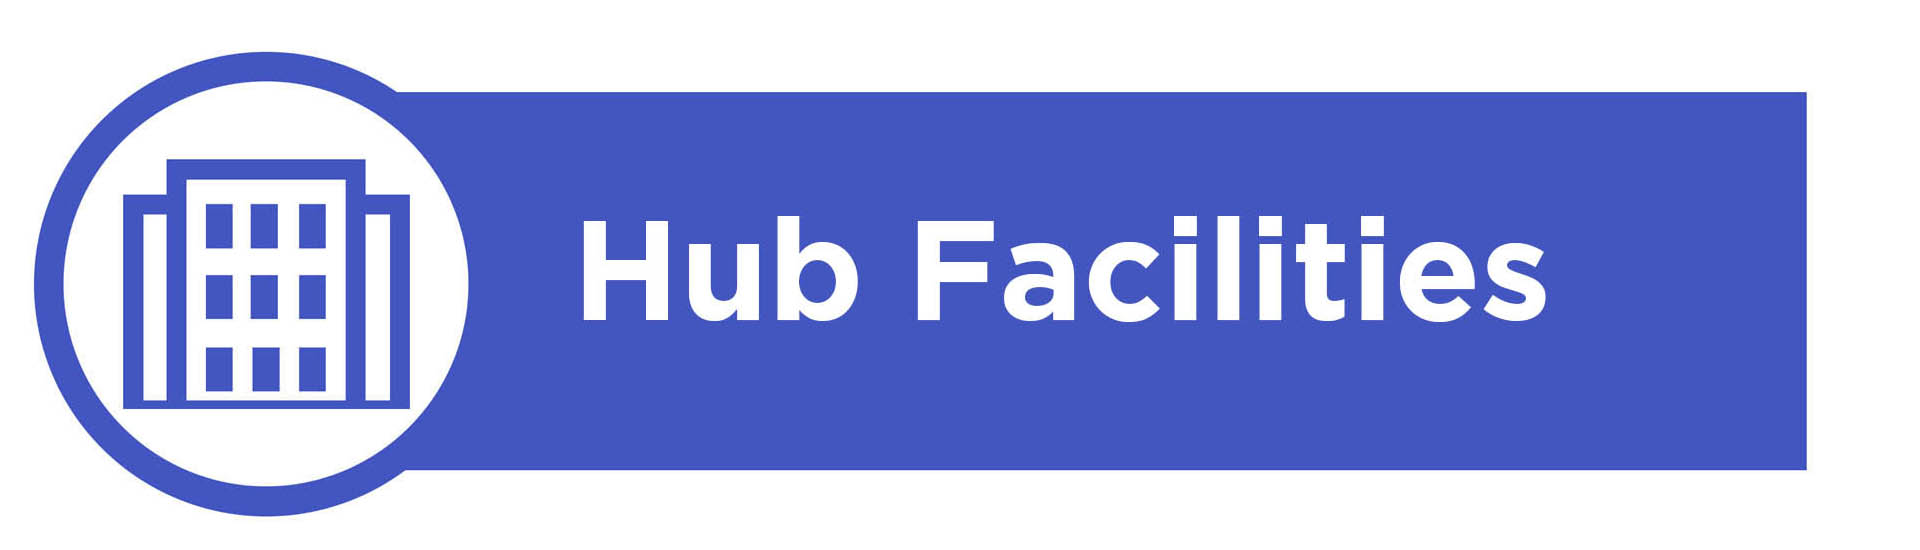 Banner image containing the text 'Hub Facilities'